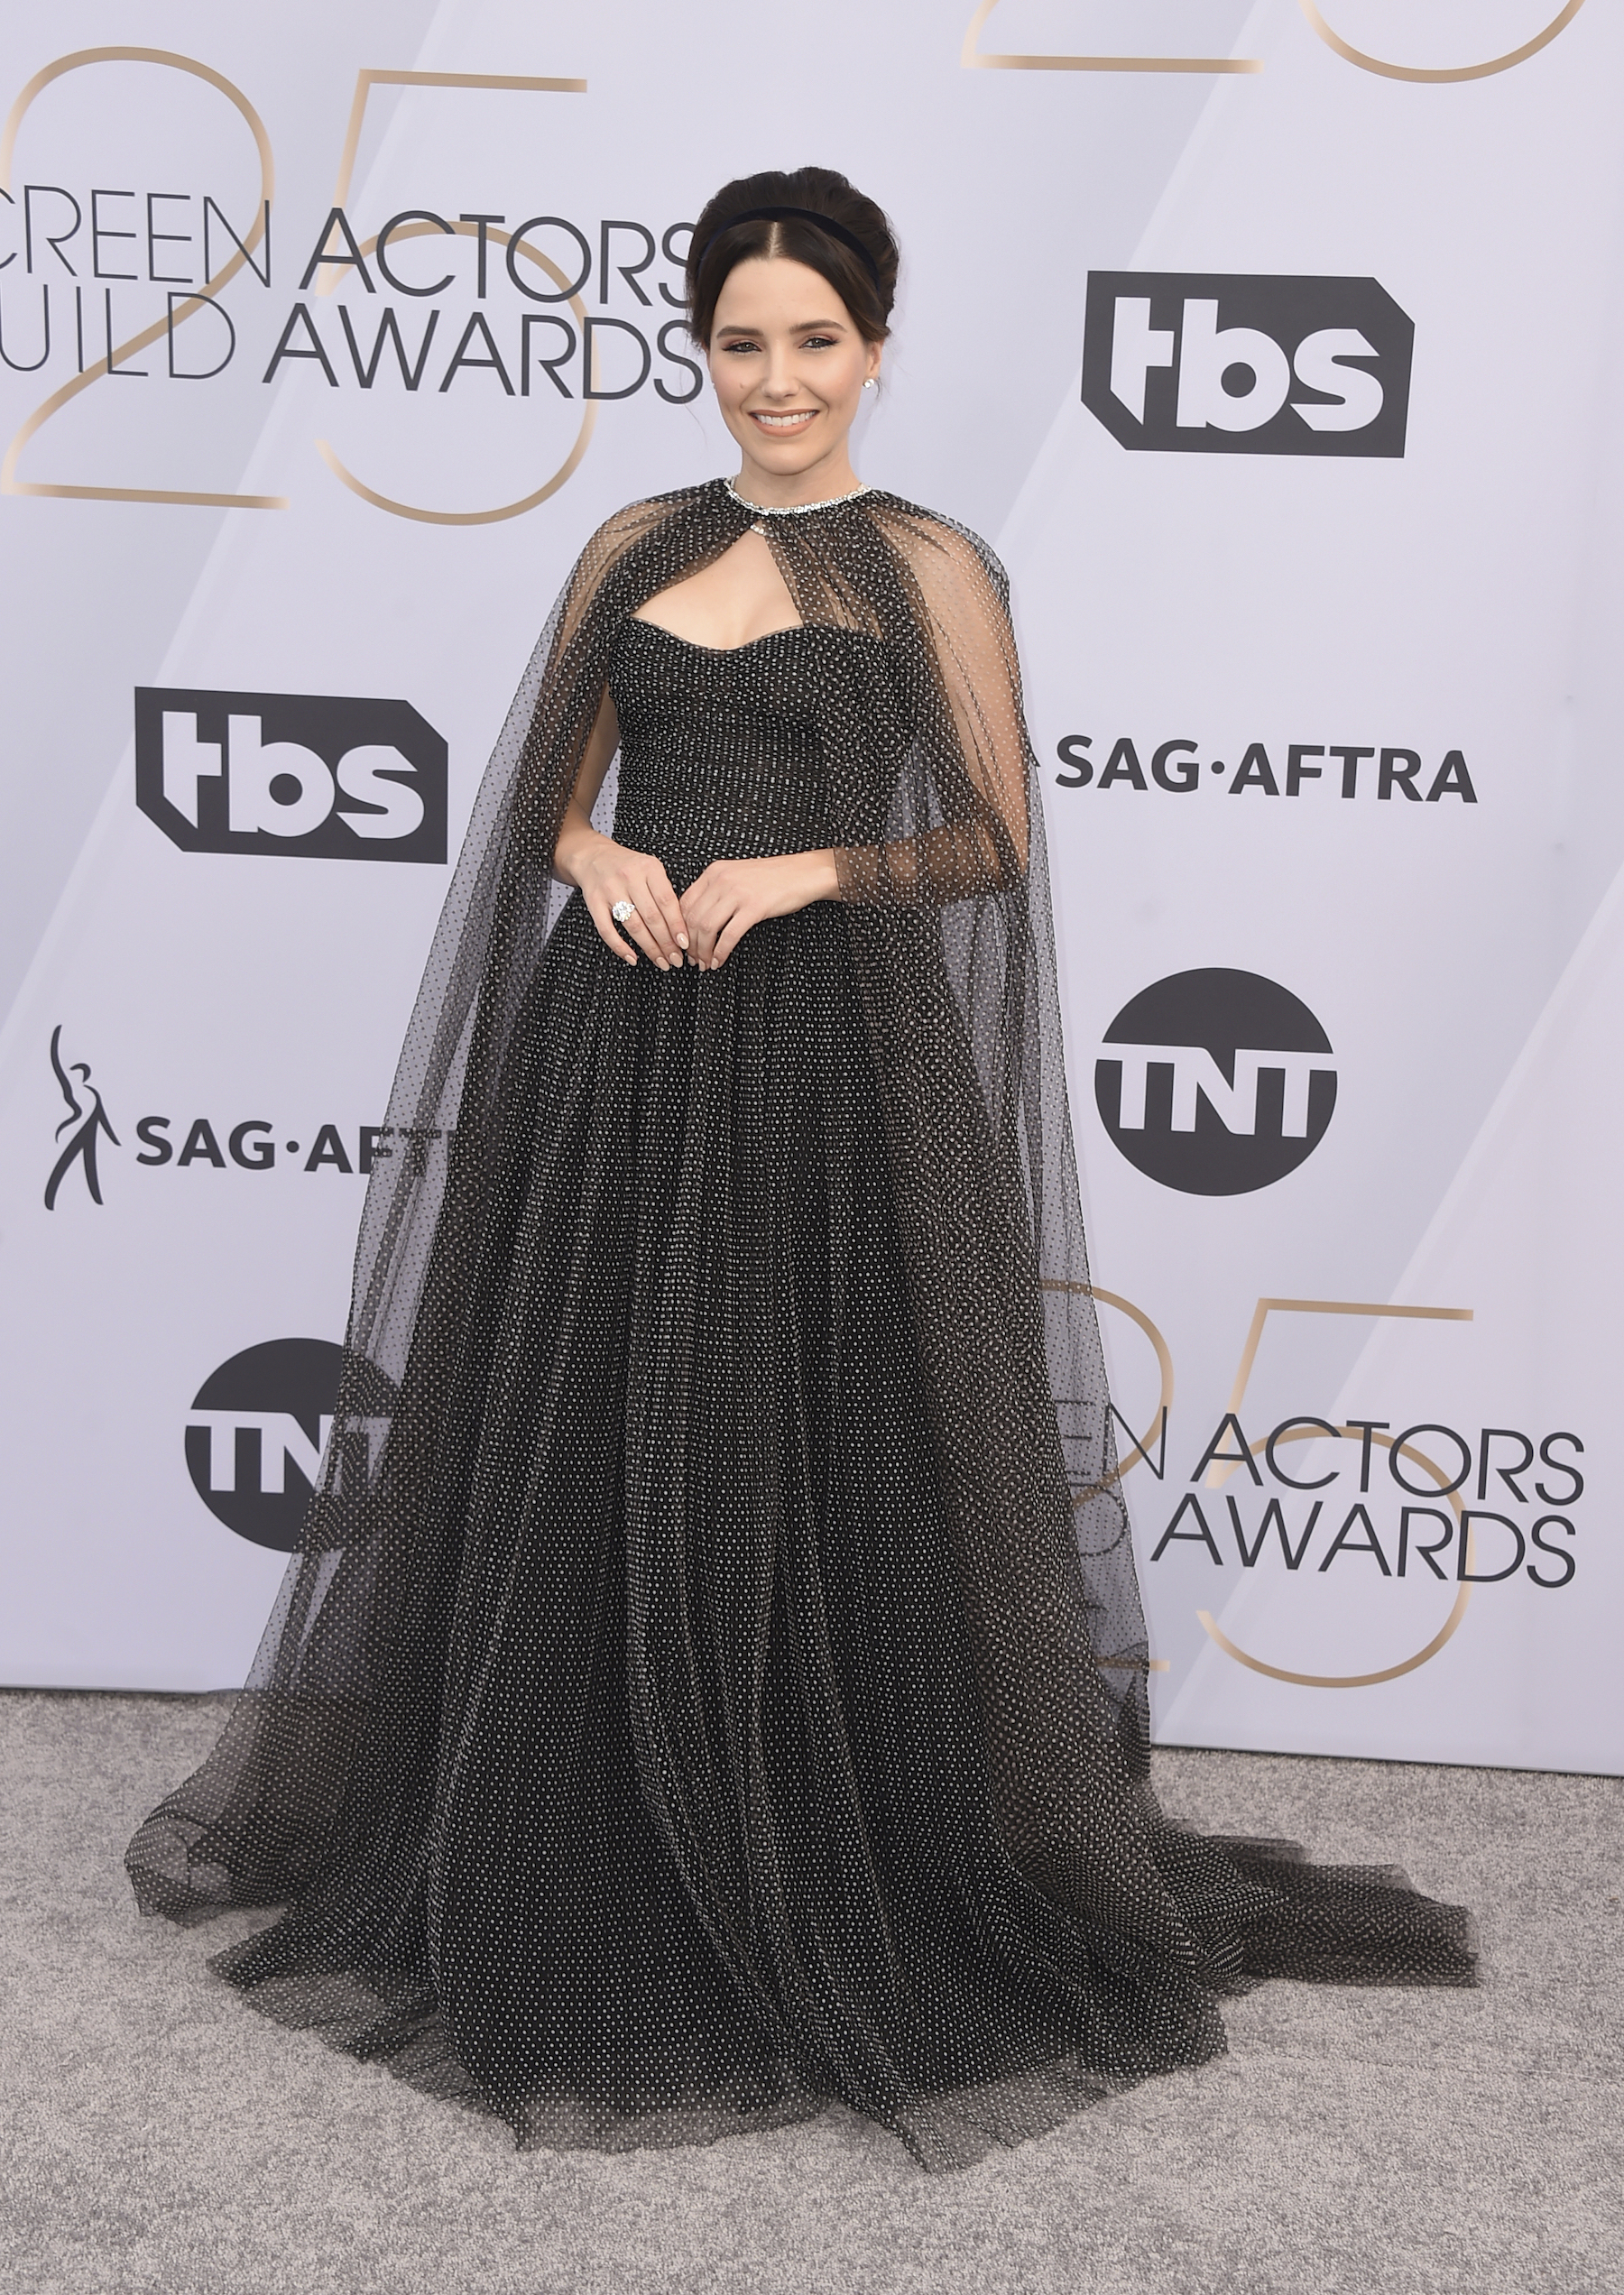 "<div class=""meta image-caption""><div class=""origin-logo origin-image ap""><span>AP</span></div><span class=""caption-text"">Sophia Bush arrives at the 25th annual Screen Actors Guild Awards at the Shrine Auditorium & Expo Hall on Sunday, Jan. 27, 2019, in Los Angeles. (Jordan Strauss/Invision/AP)</span></div>"